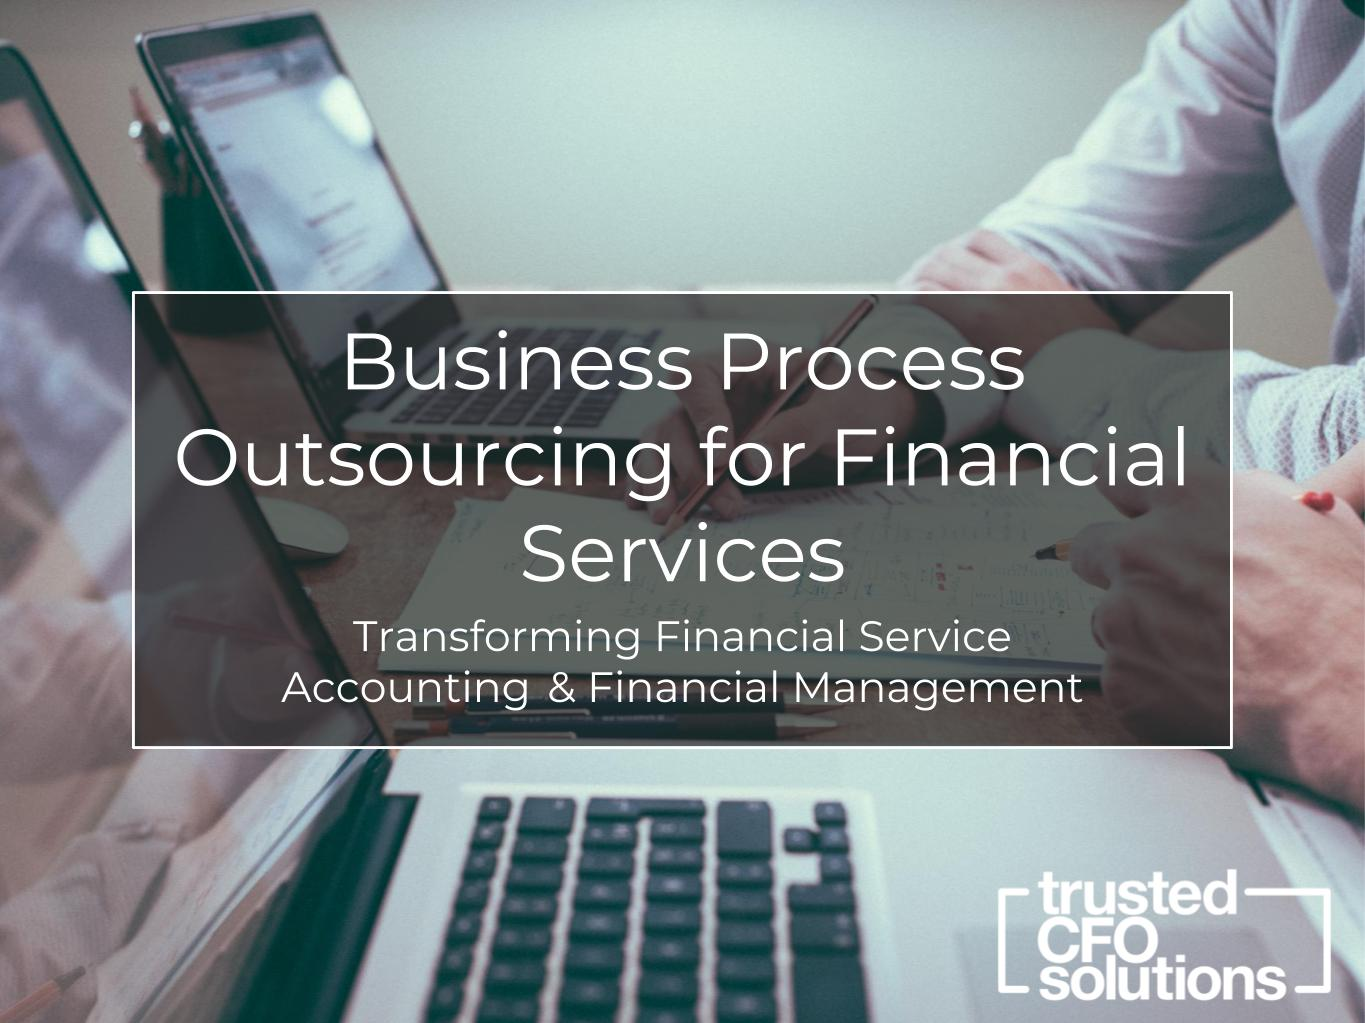 Business Process Outsourcing for Financial Services